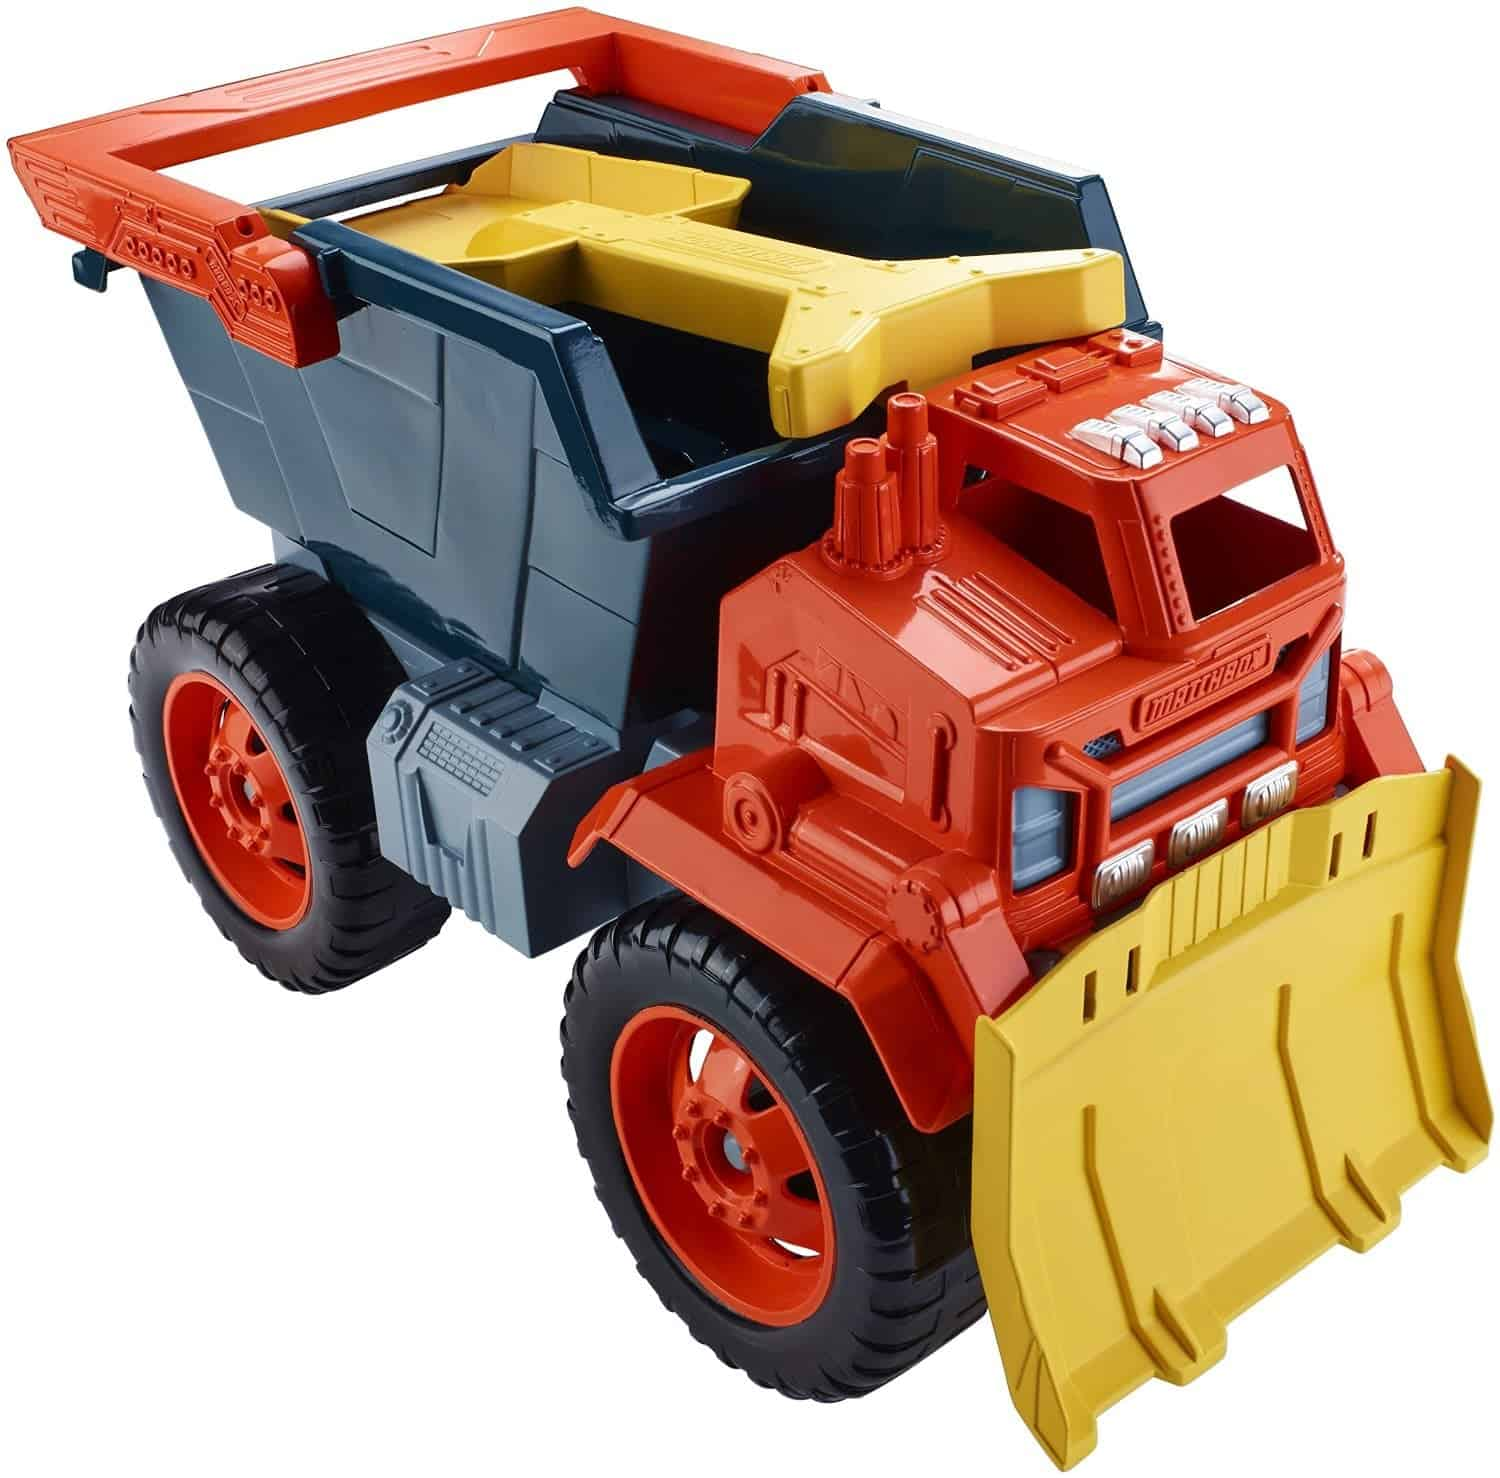 10+ Best Games and Toys for a Fun Day at the Beach: Sand Truck| www.thepinningmama.com